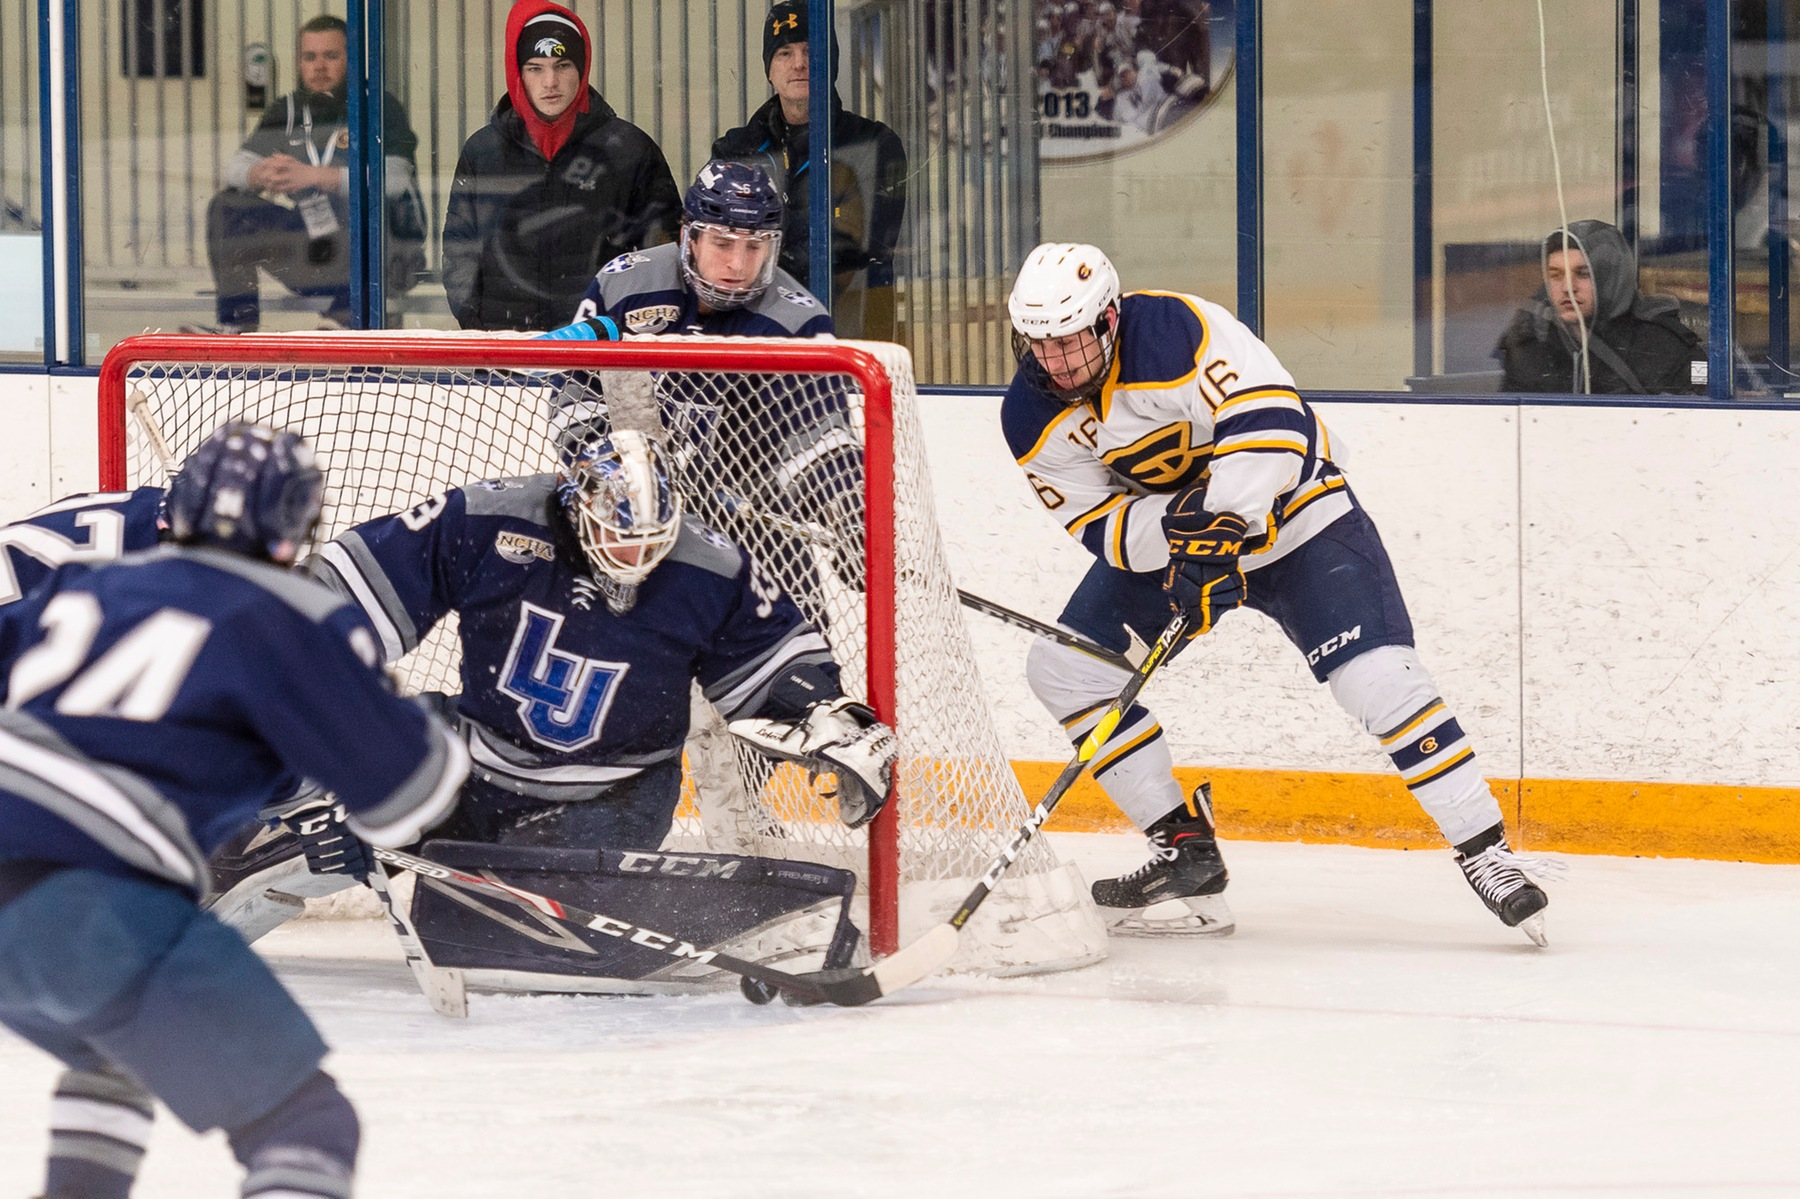 Blugolds blank Vikings for 11th win